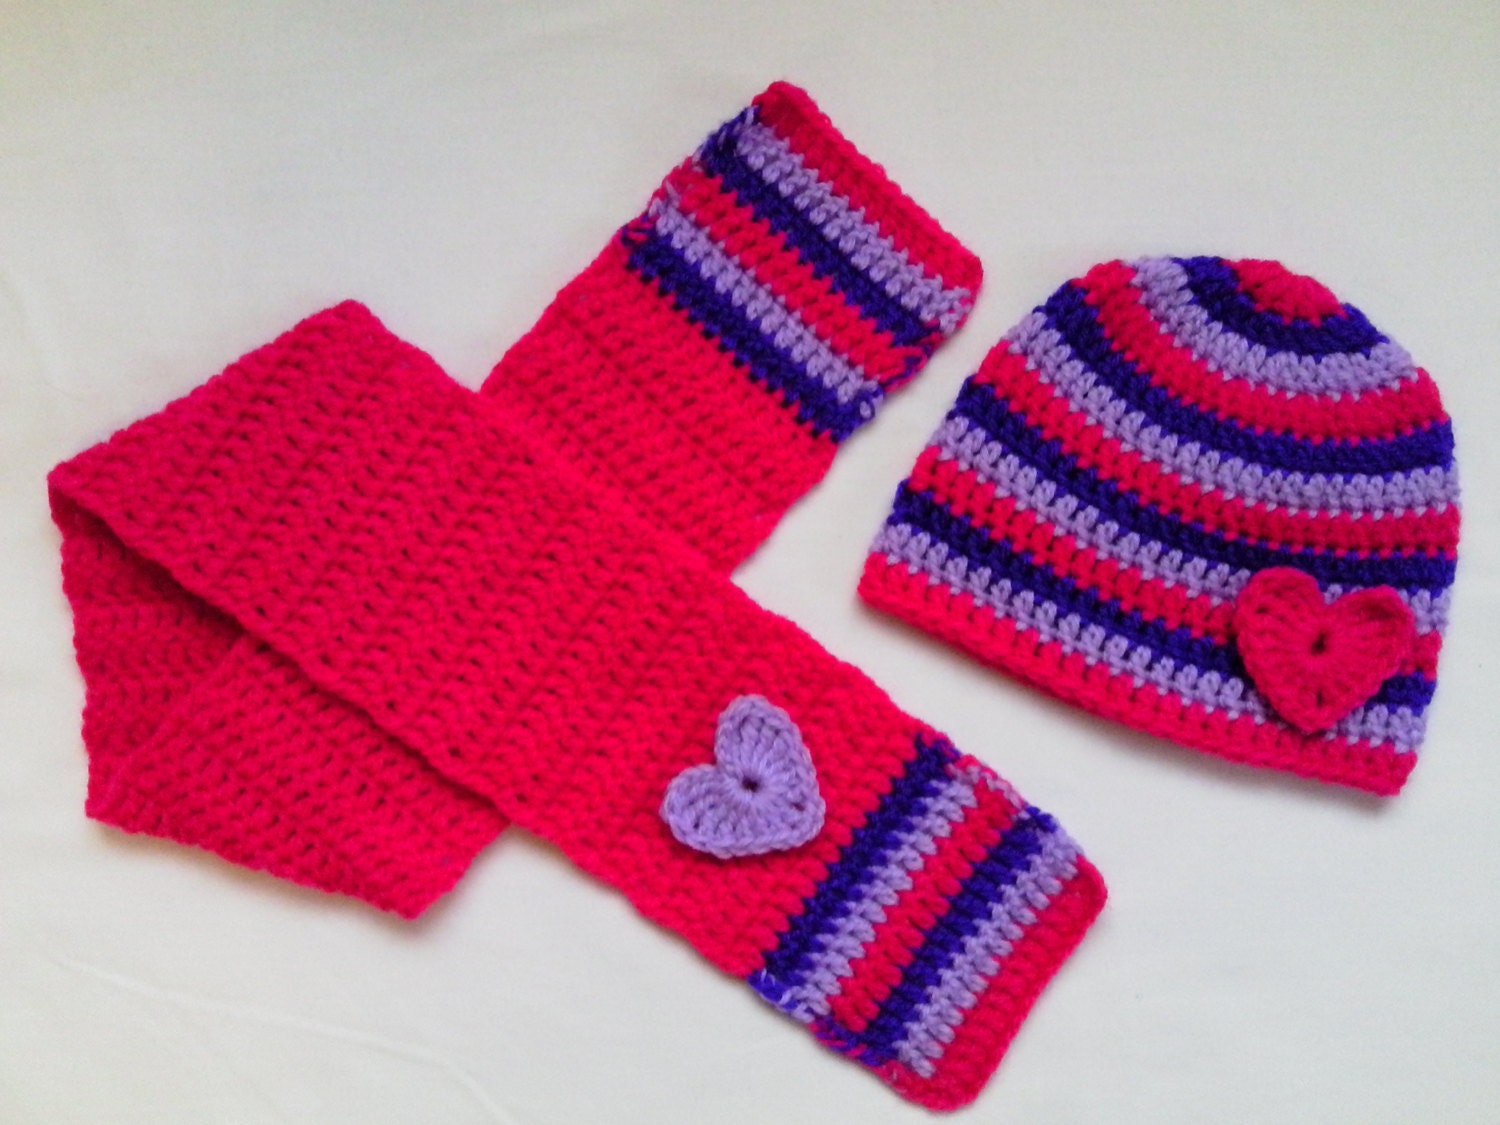 1 Set Baby Hat Scarf % Cotton Soft Cap Collar Spring Beanies Scarf Neck Ring. New (Other) $ to $ From China. Buy It Now. Star Printed Baby Hat and Scarf Set Cotton Kids Beanie Hats Spring Baby Cap Set. Unbranded. $ From China. Buy It .